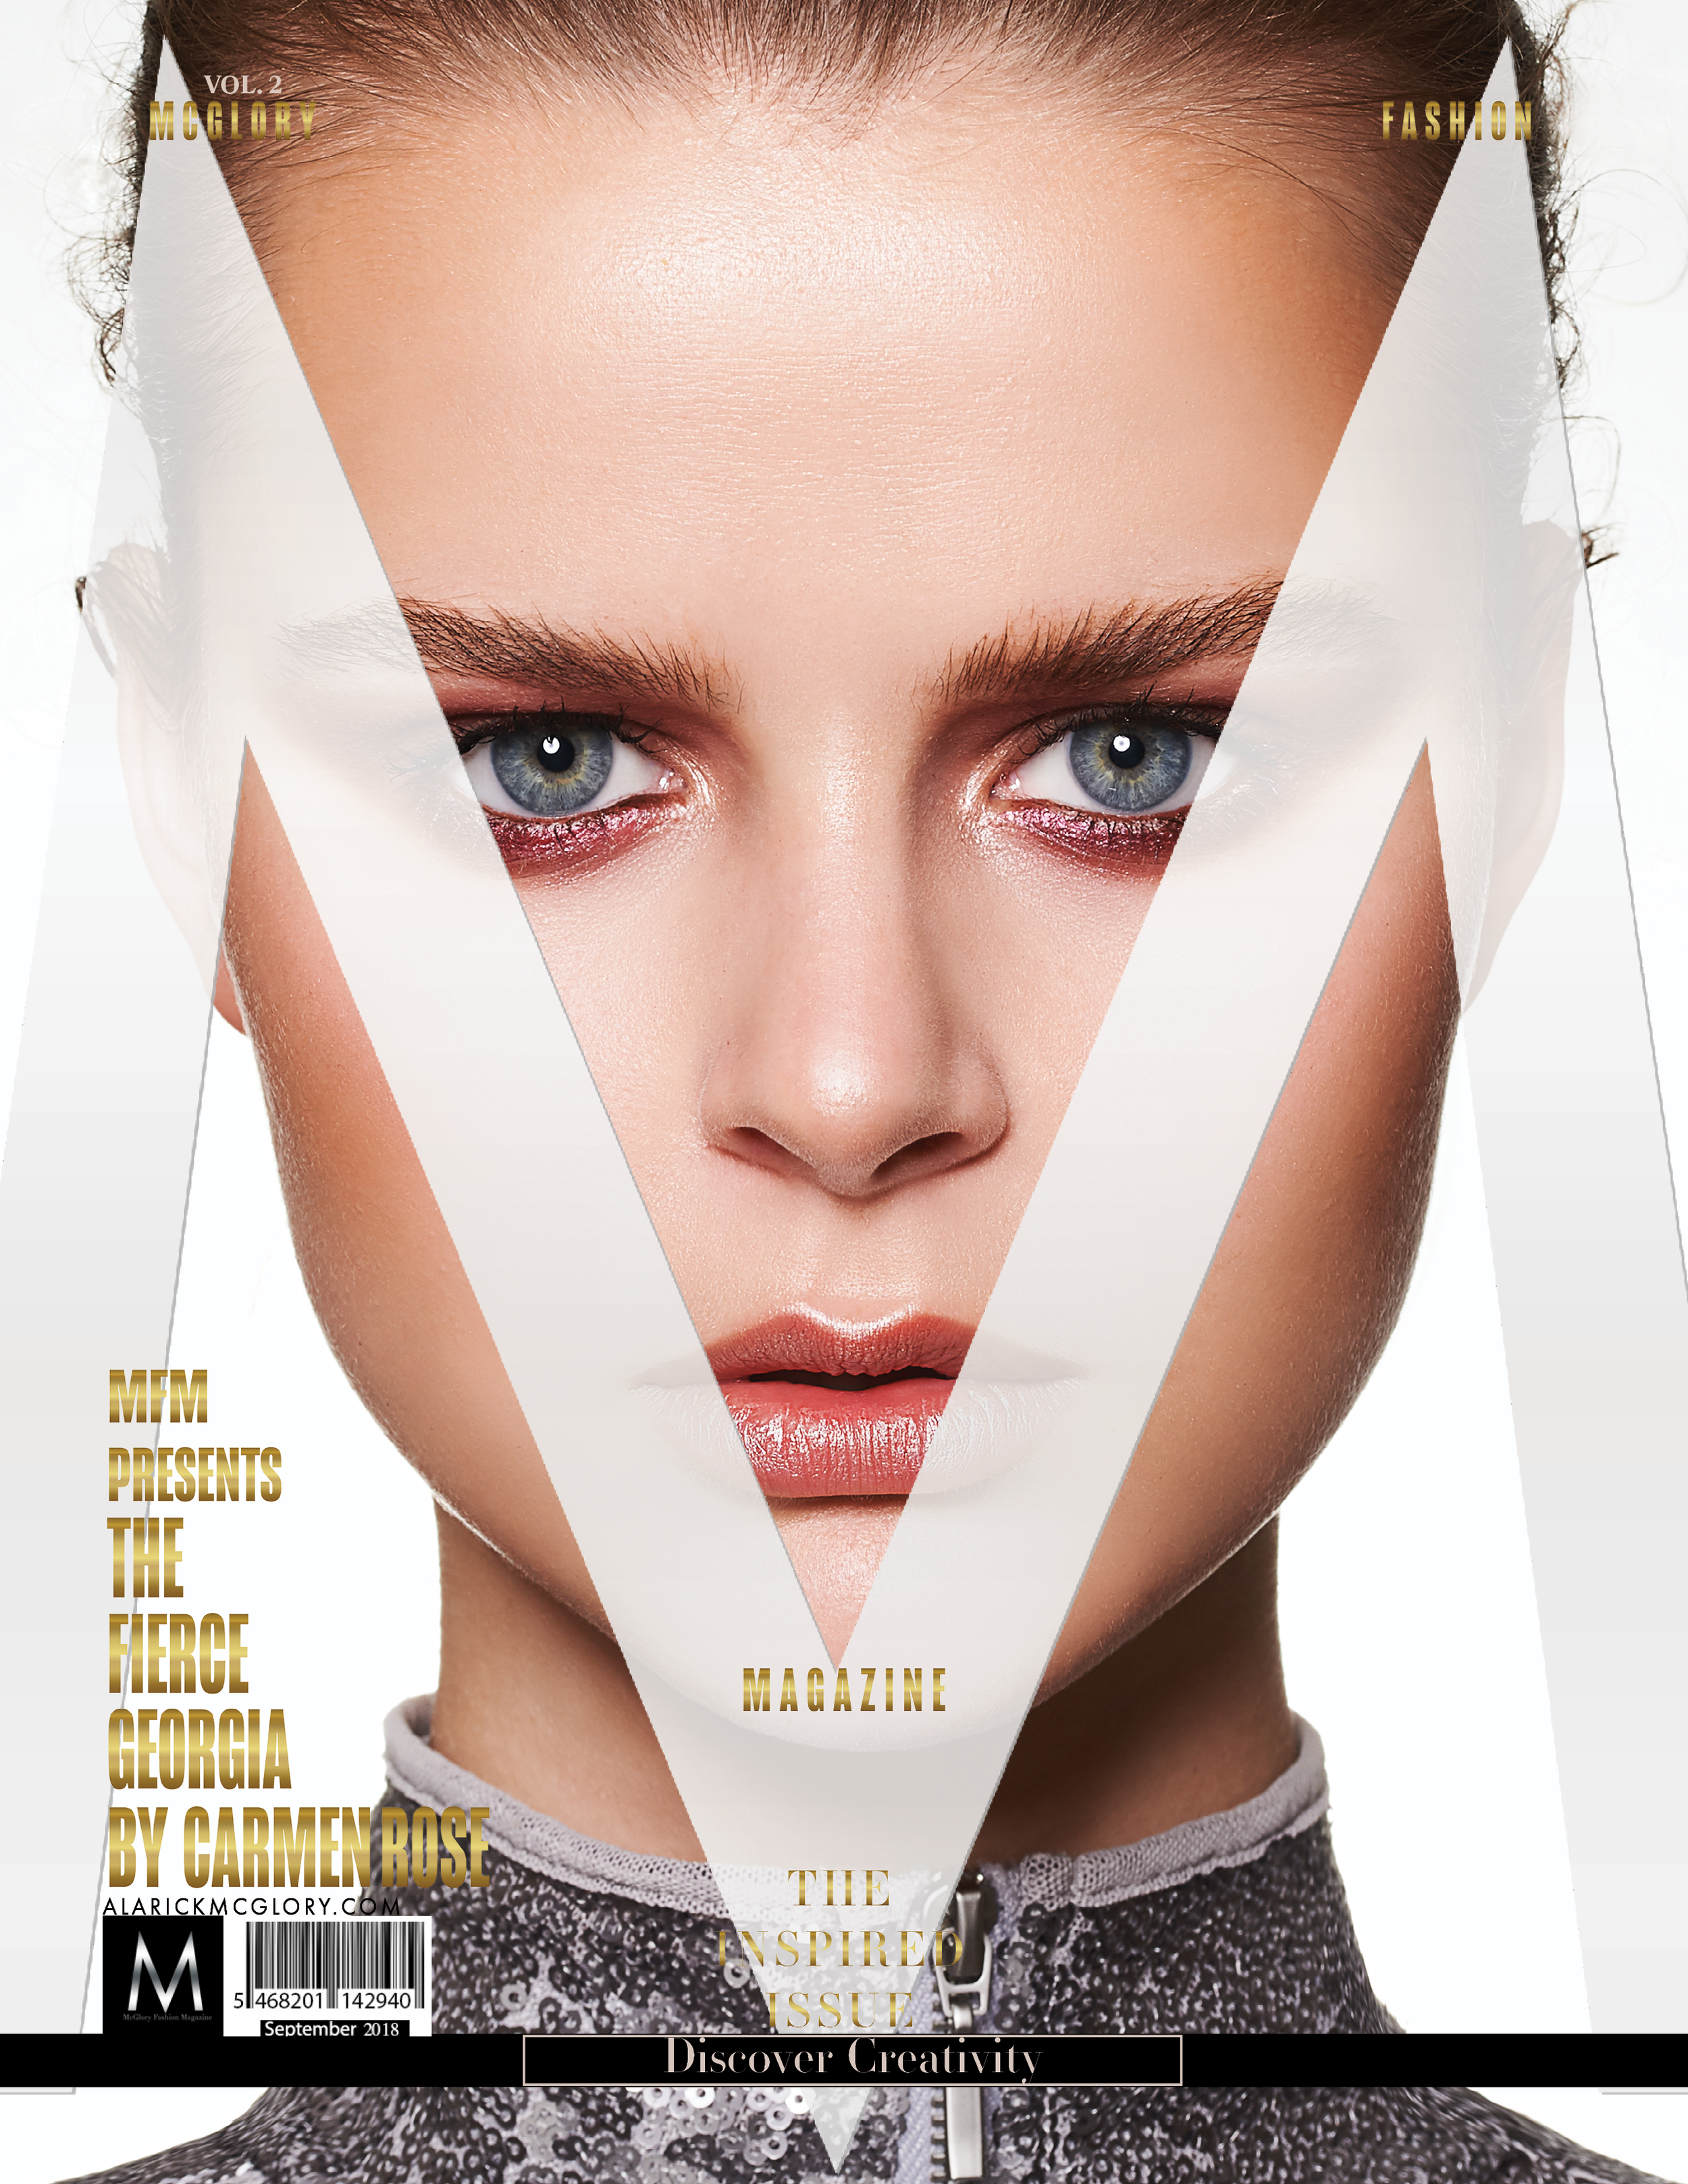 MFM first issue 6-edited 106 Part 2 space 2-2-2-2 PDF VOL 2 NEW NEW print.png